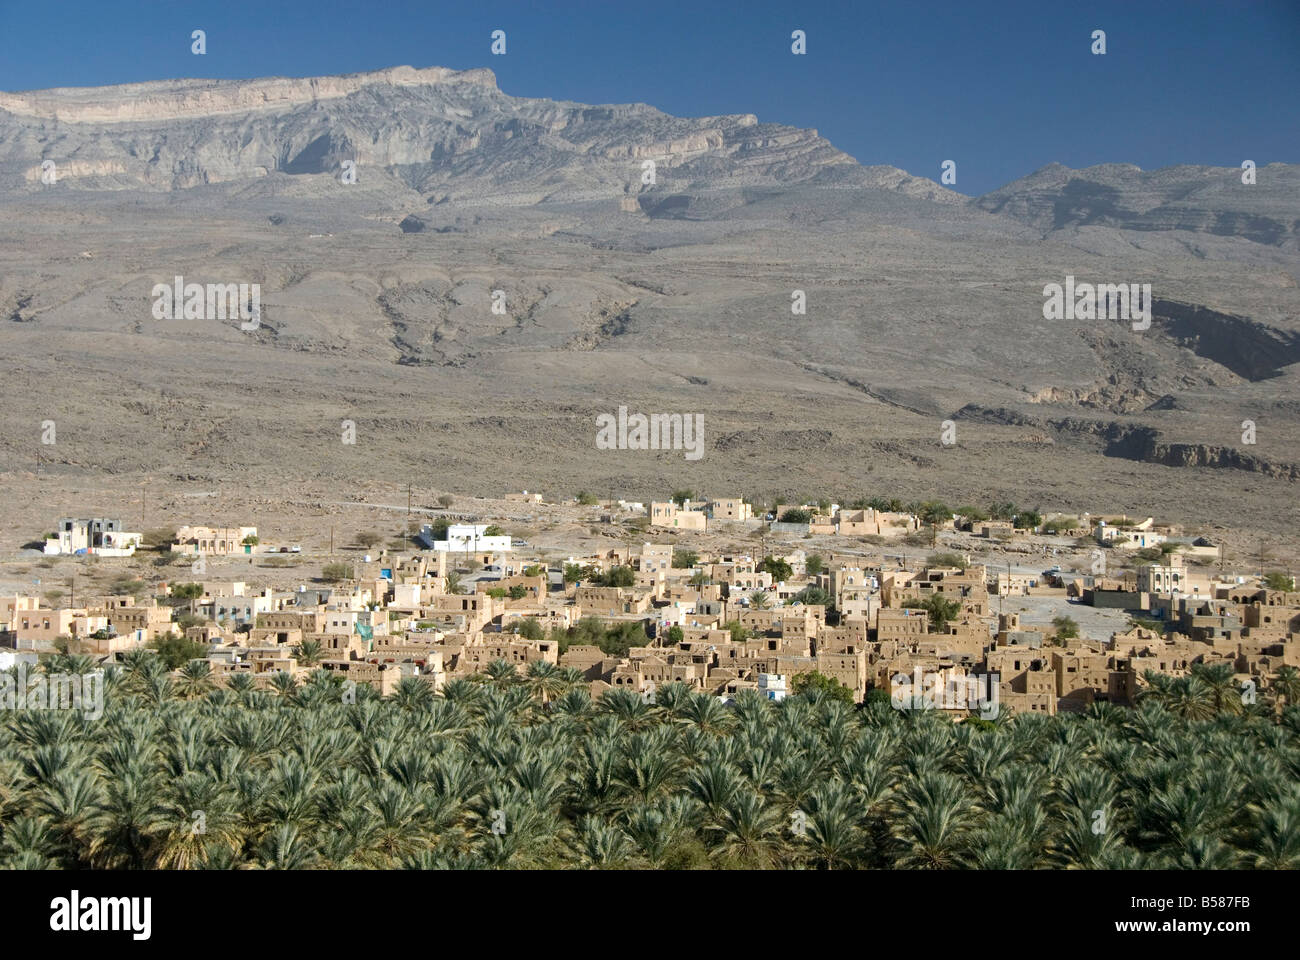 Small town beside its irrigated palmery, Al Hamra, at foot of mountain of Jabal Akhdar, northern Oman, Middle East - Stock Image